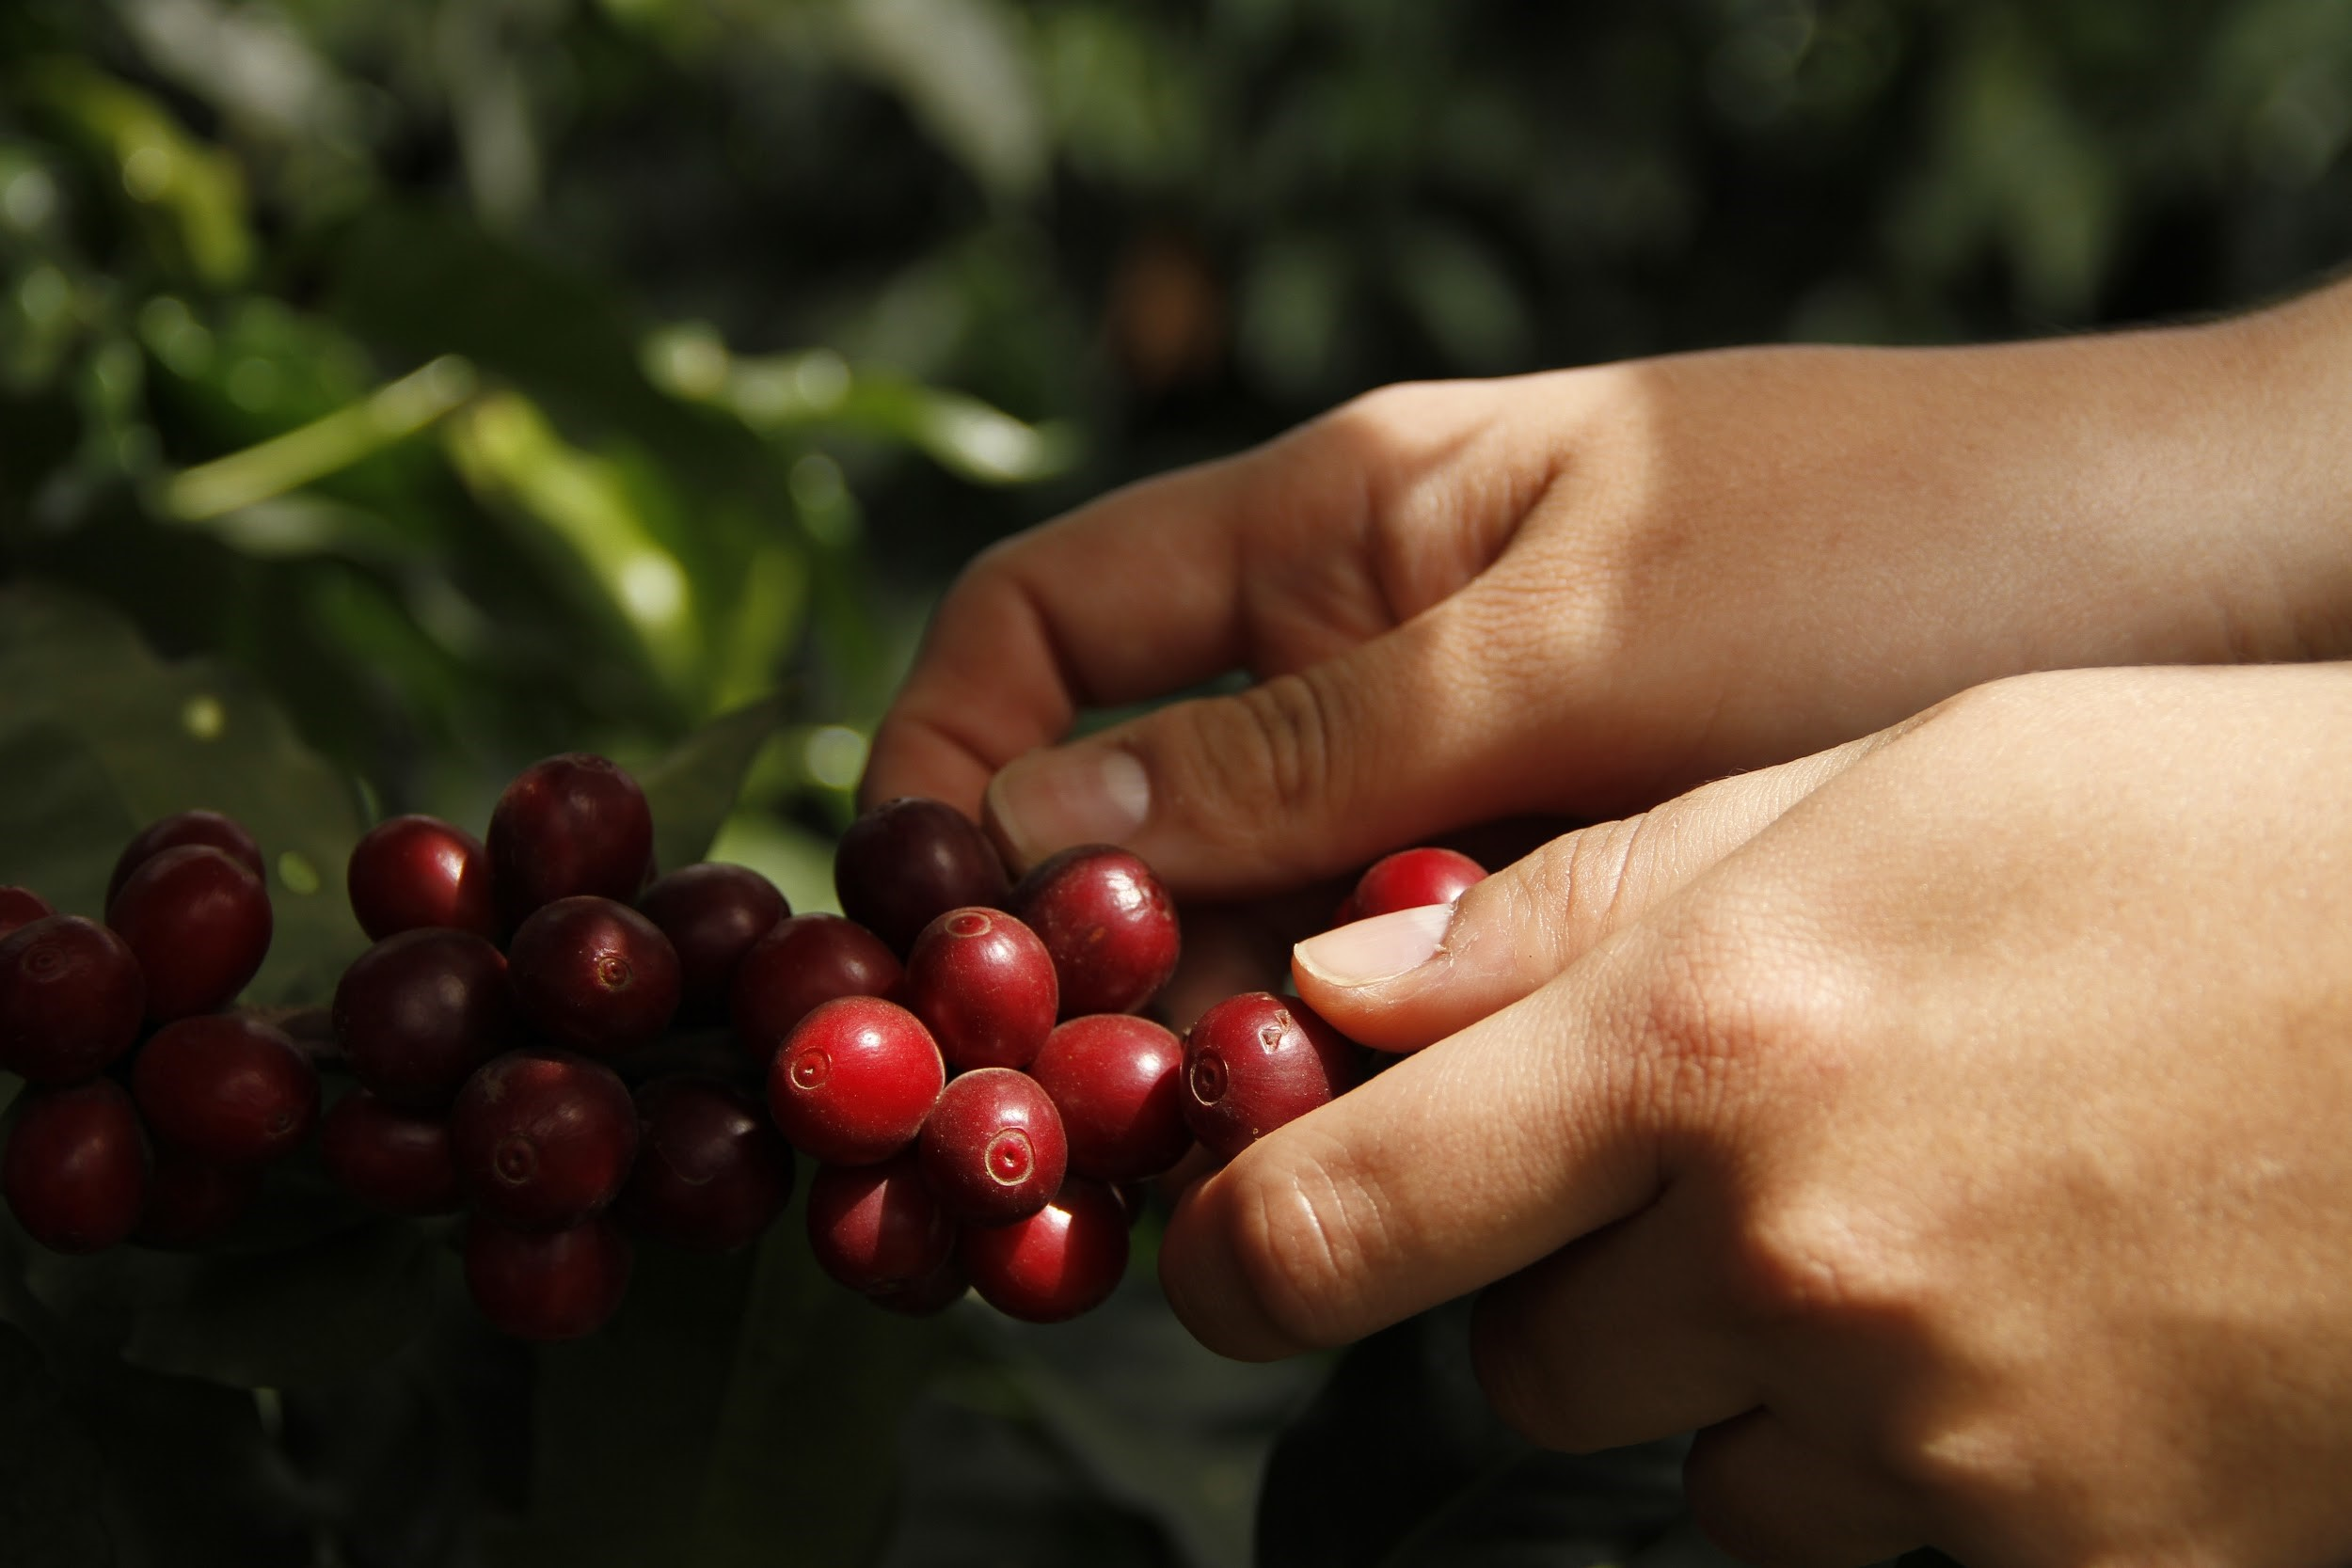 Picking coffee cherries from a bush.